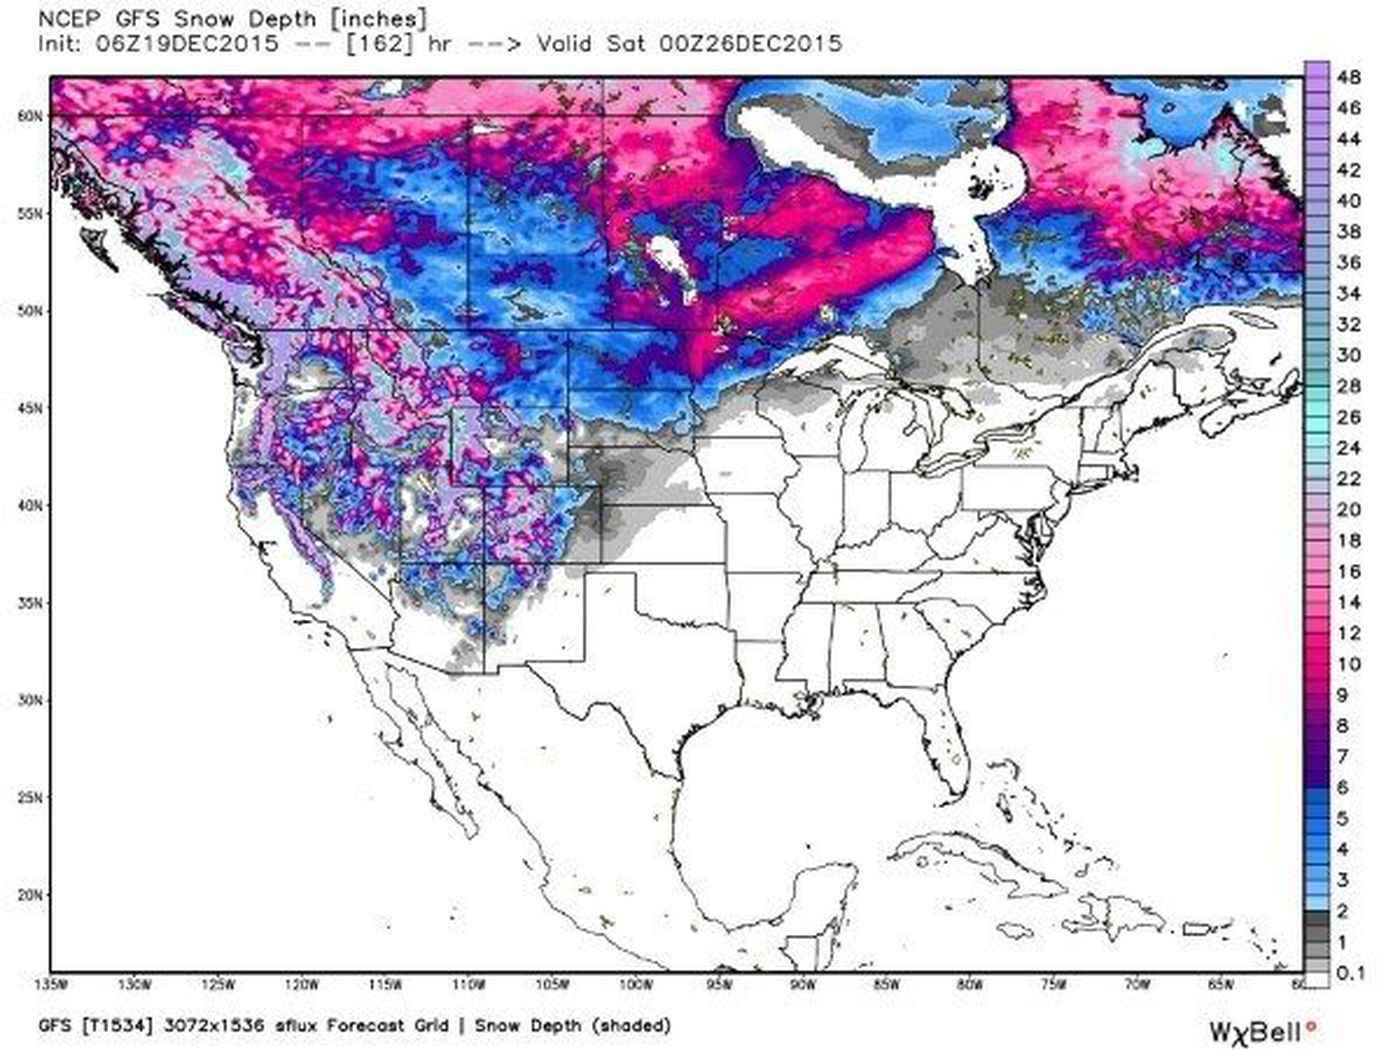 BLOG: Who will see a White Christmas?